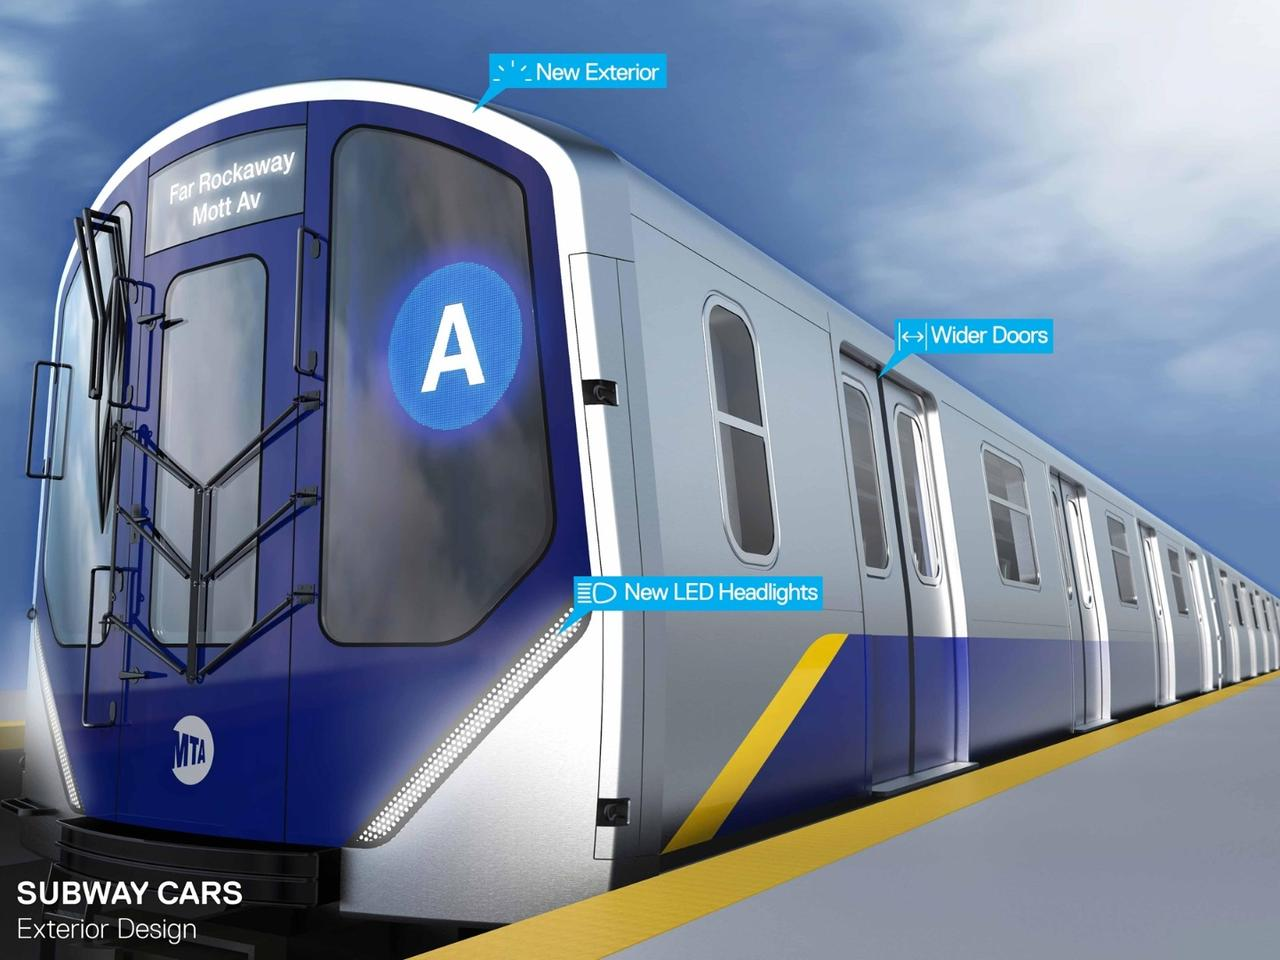 On their exteriors, the trains will boast large front windows, LED headlights and revised graphics